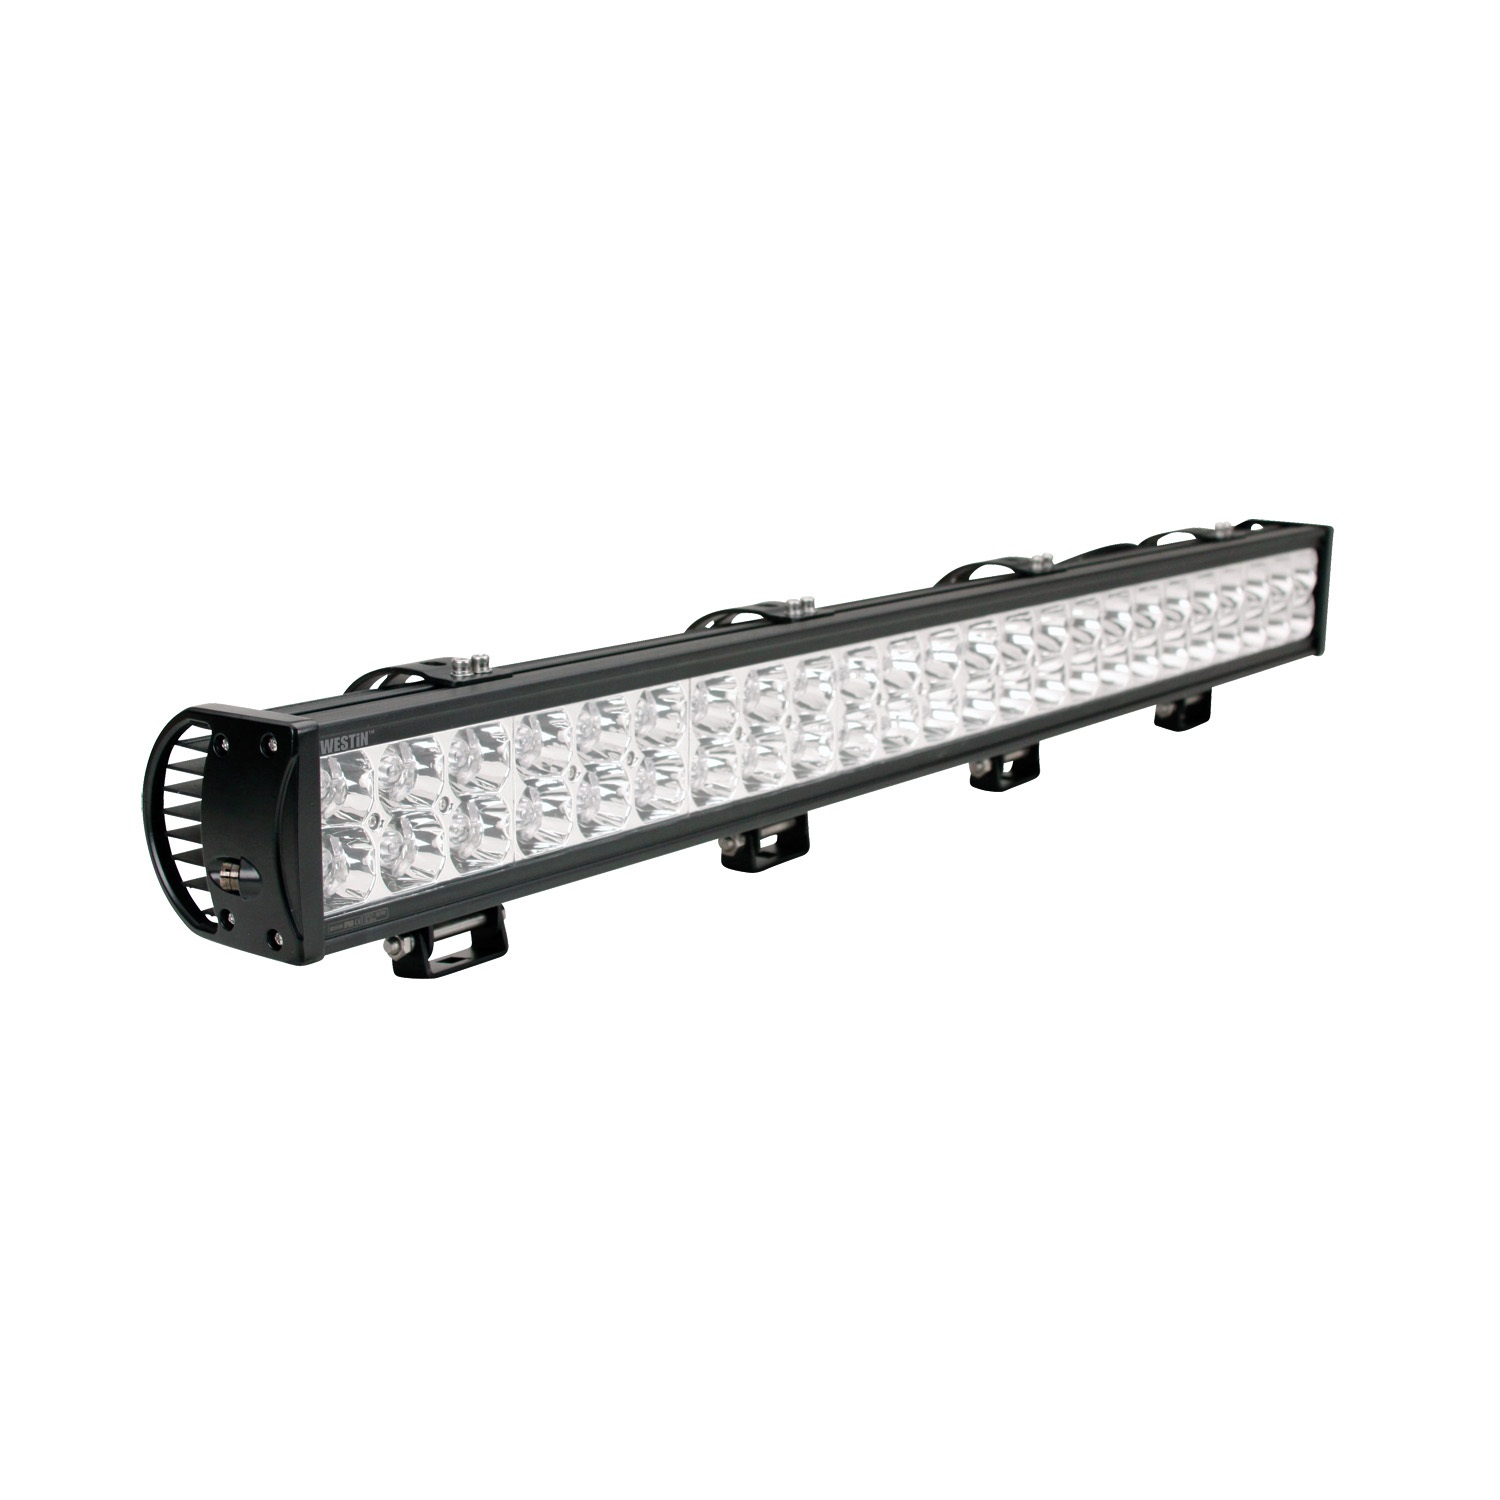 Westin 09-12215-144S EF LED Light Bar